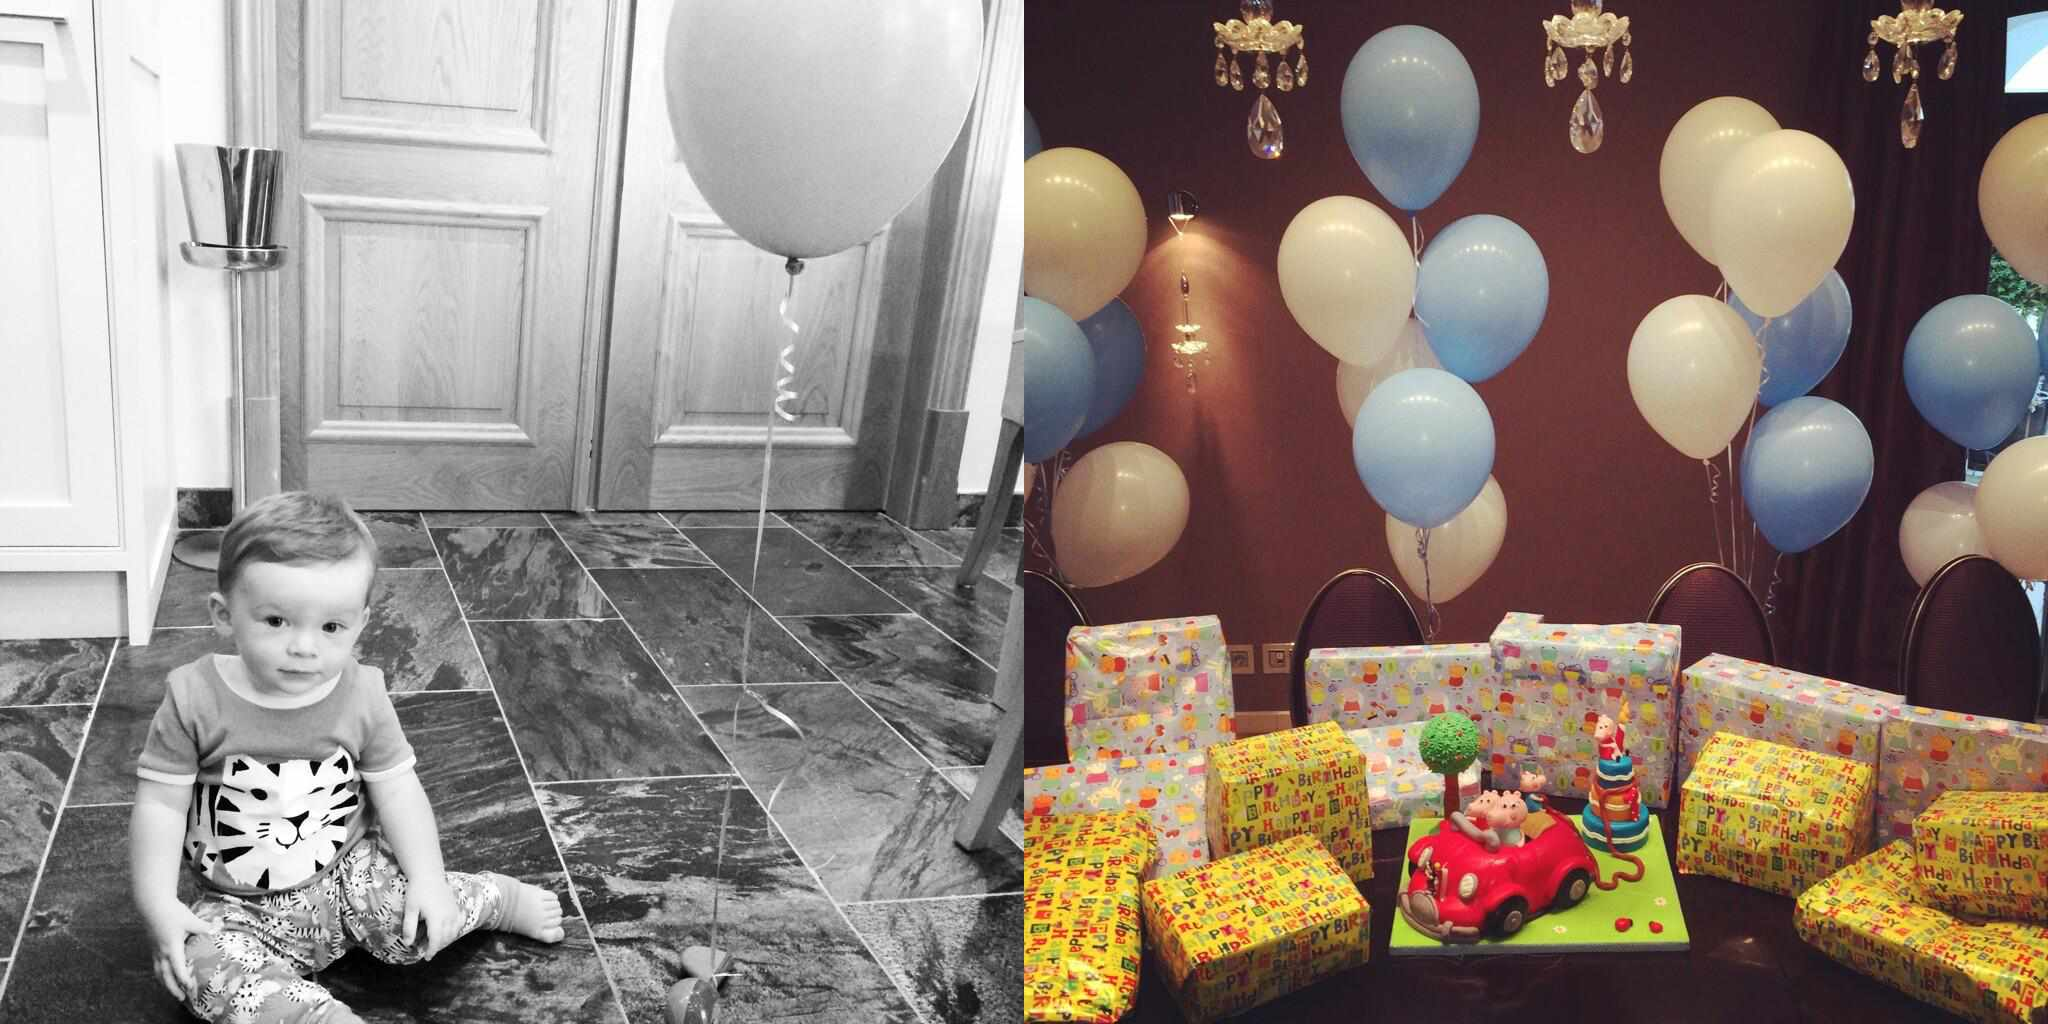 coleen-rooney-celebrates-klays-1st-birthday-with-mountain-of-presents_54179